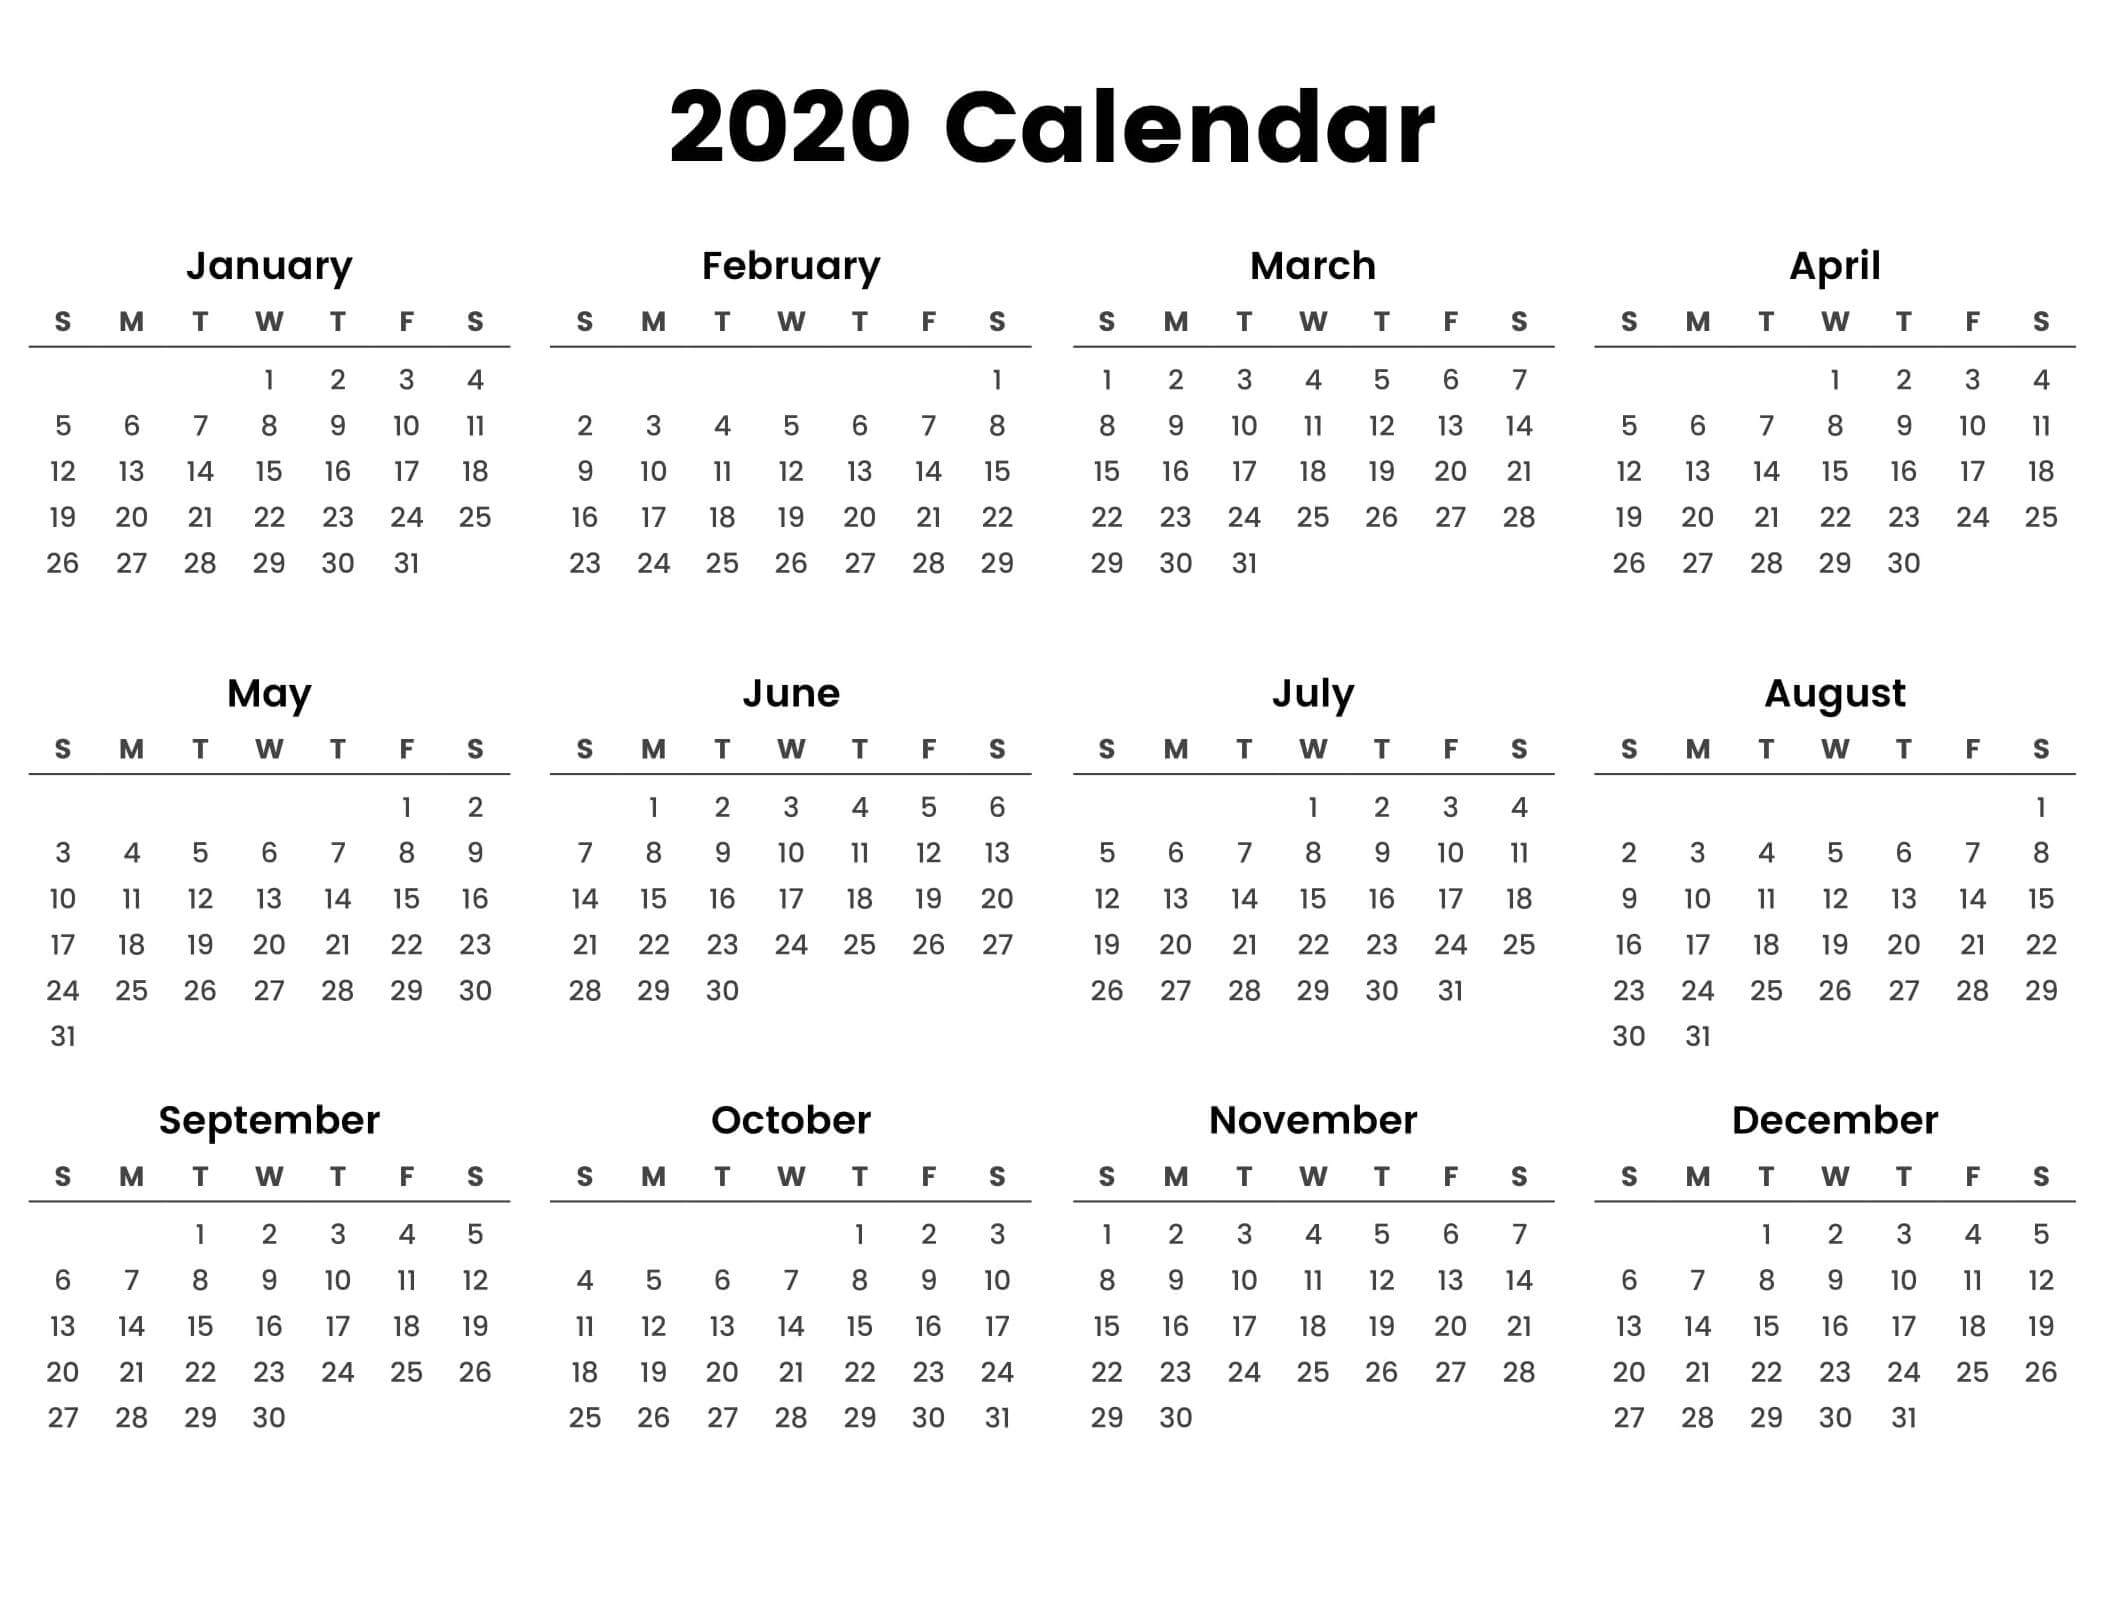 Large Yearly Calendar 2020 With Notes Pdf - Set Your Plan for Calendar At A Glance Printable 2020